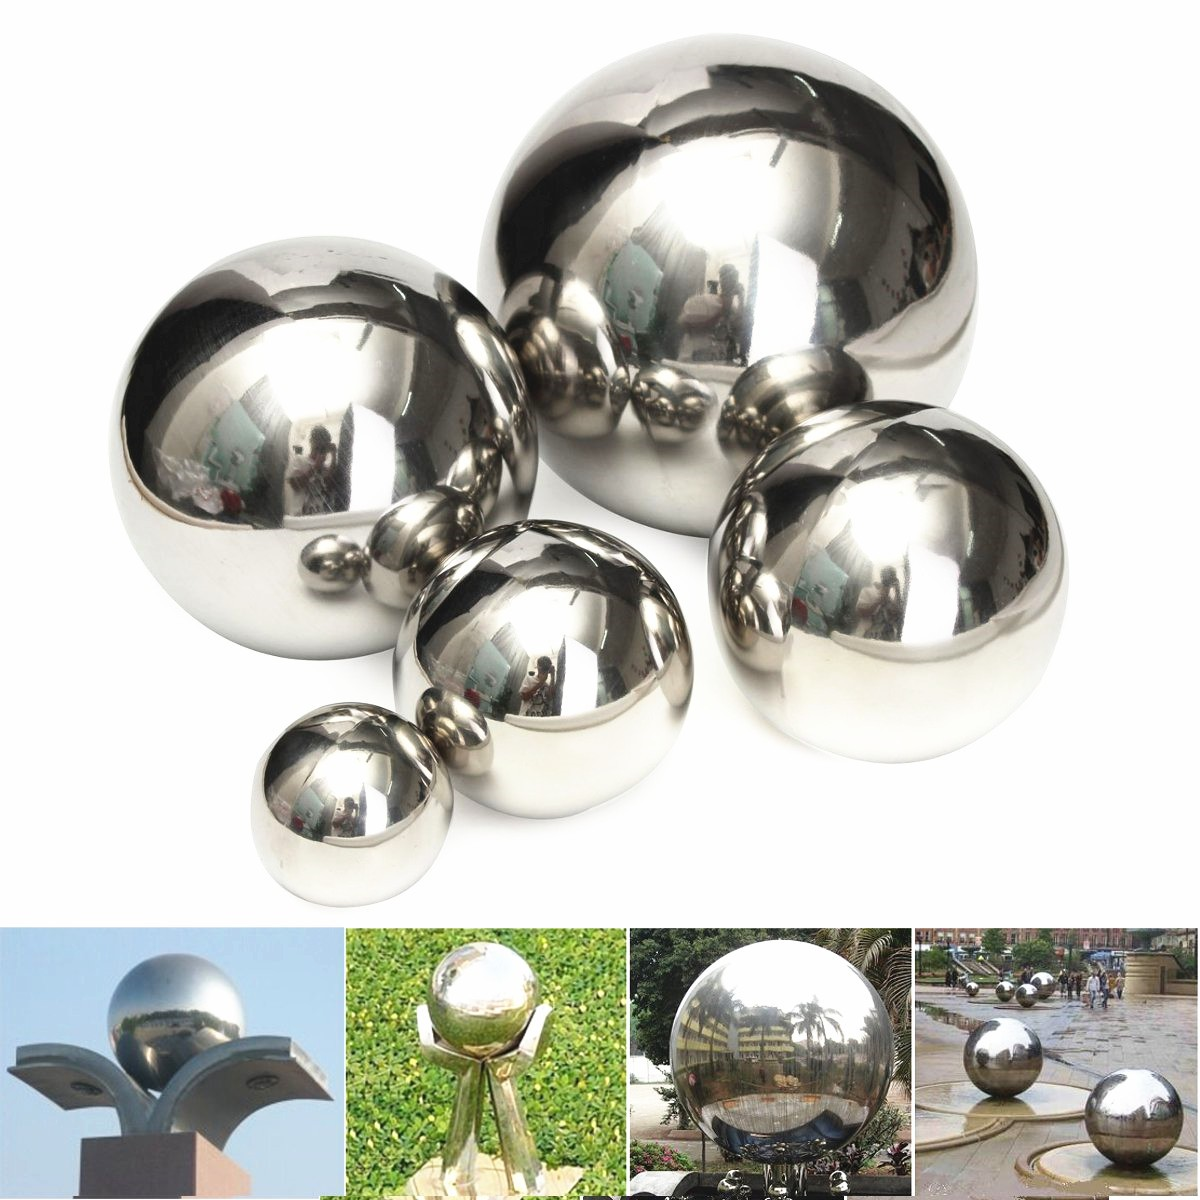 Фото Stainless Steel Mirror Ball Polished Hollow Ball Hardware Accessories 5/8/10/12/15cm new safurance 200w 12v loud speaker car horn siren warning alarm stainless steel home security safety